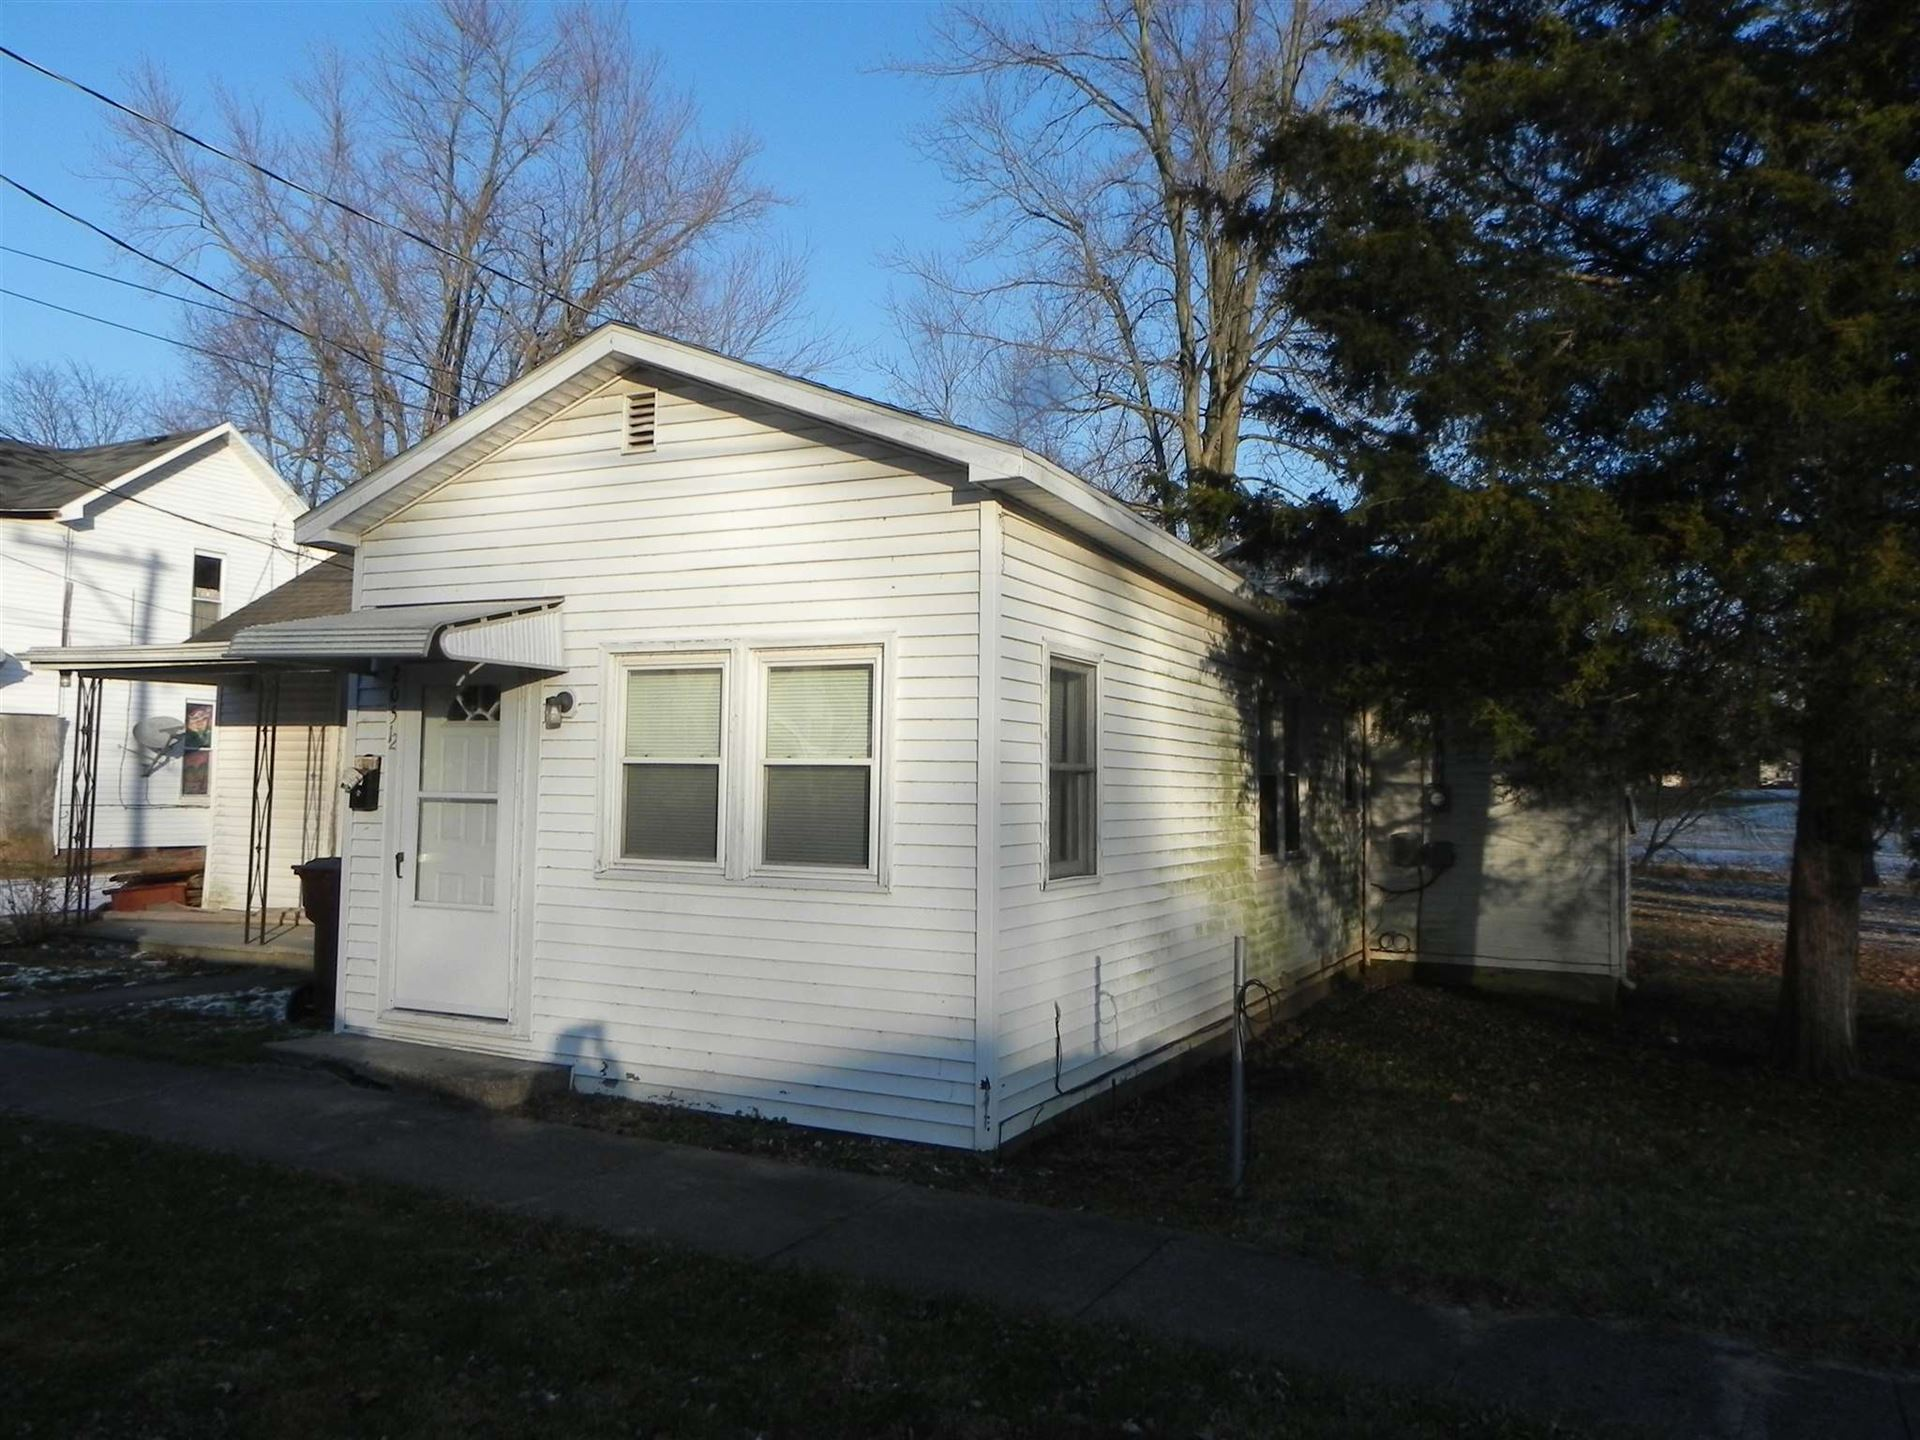 Photo of 205 1/2 S Sycamore Street, North Manchester, IN 46962 (MLS # 202009733)